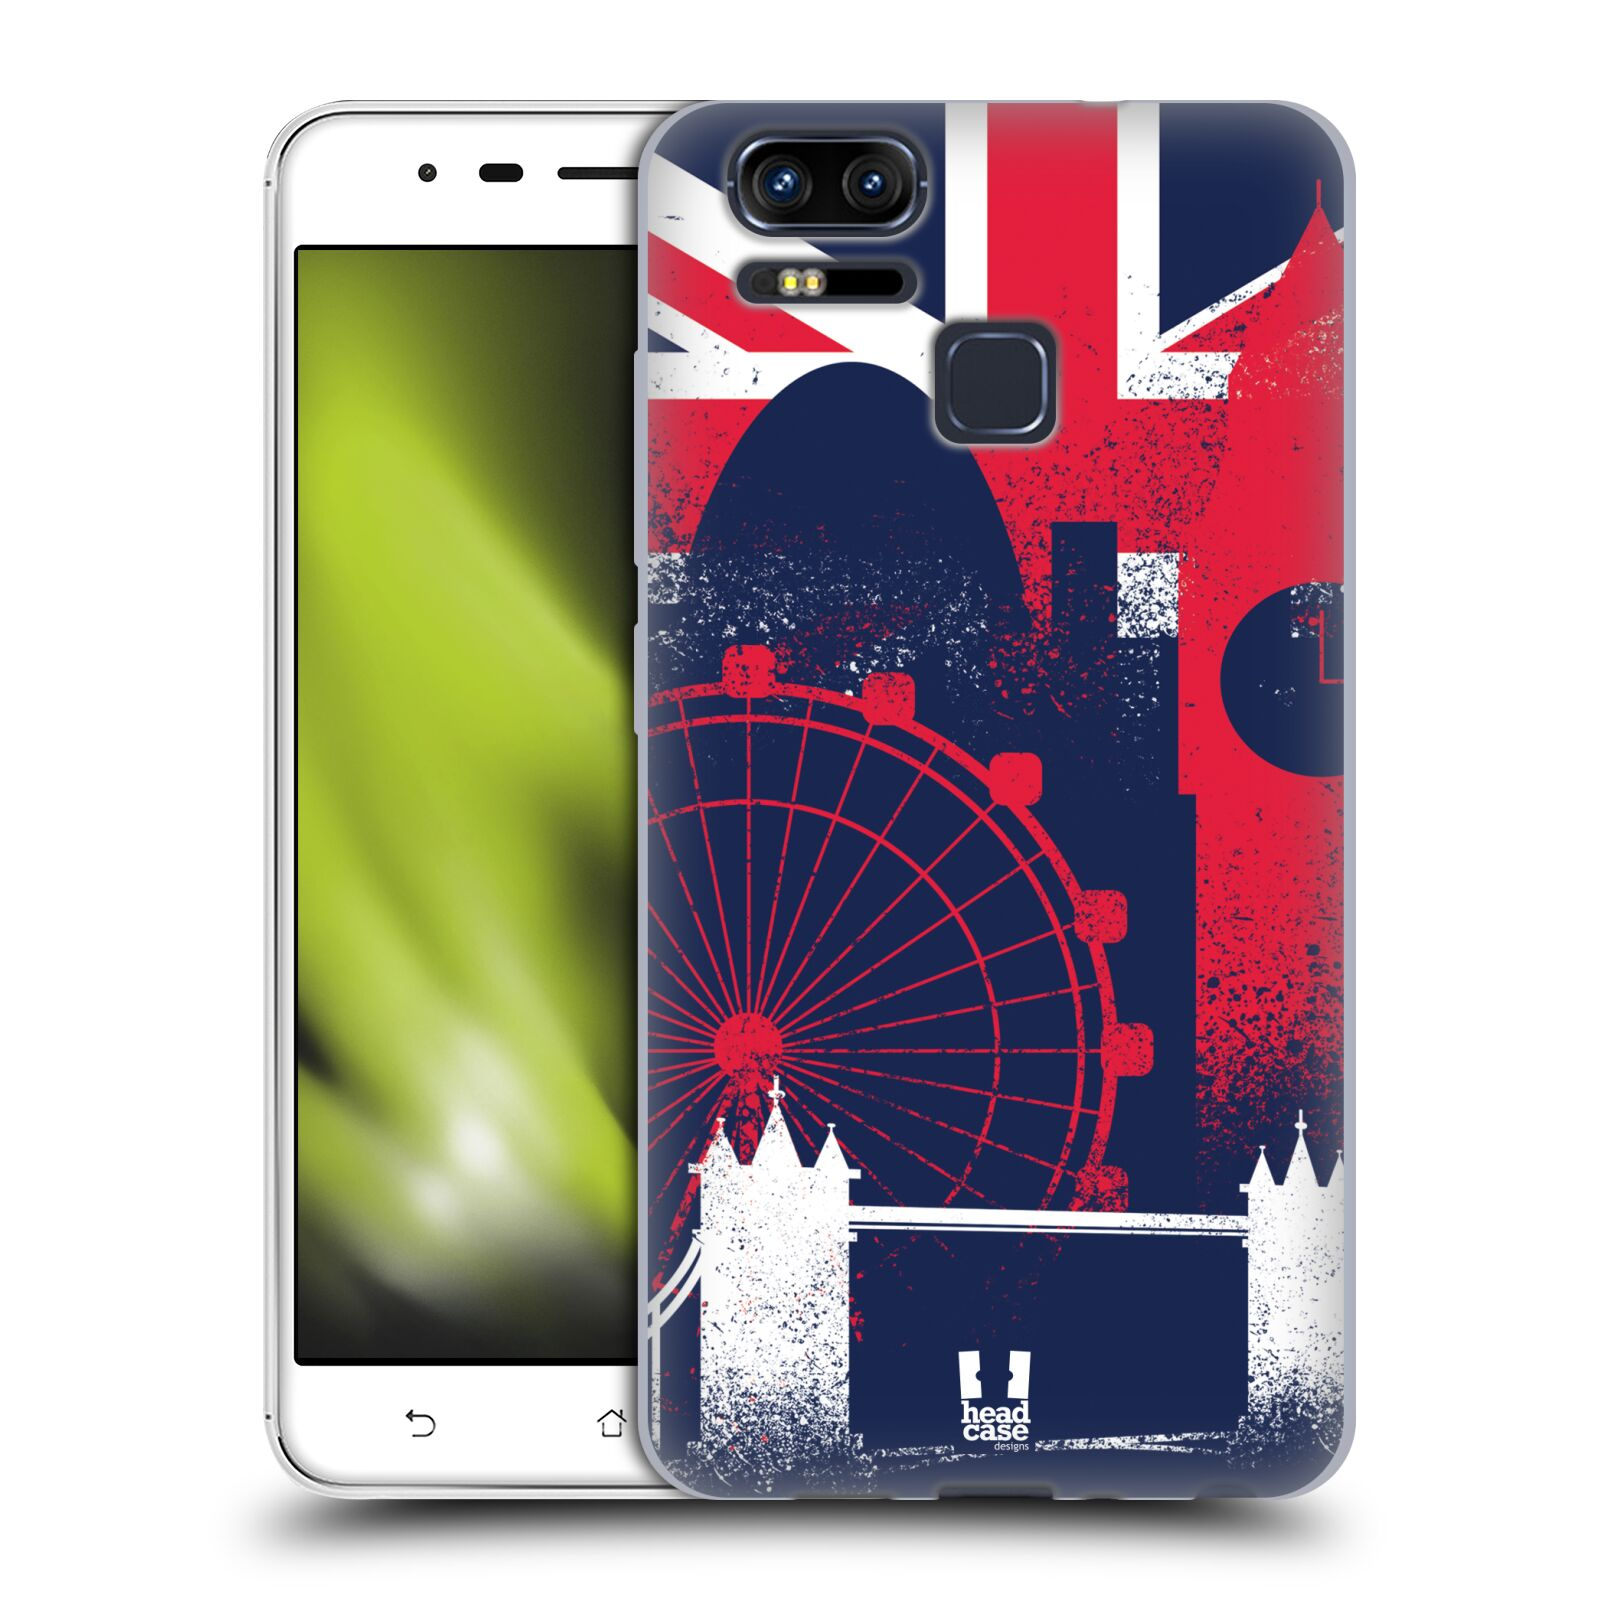 HEAD-CASE-DESIGNS-LONDON-PRINTS-SOFT-GEL-CASE-FOR-ASUS-ZENFONE-3-ZOOM-ZE553KL